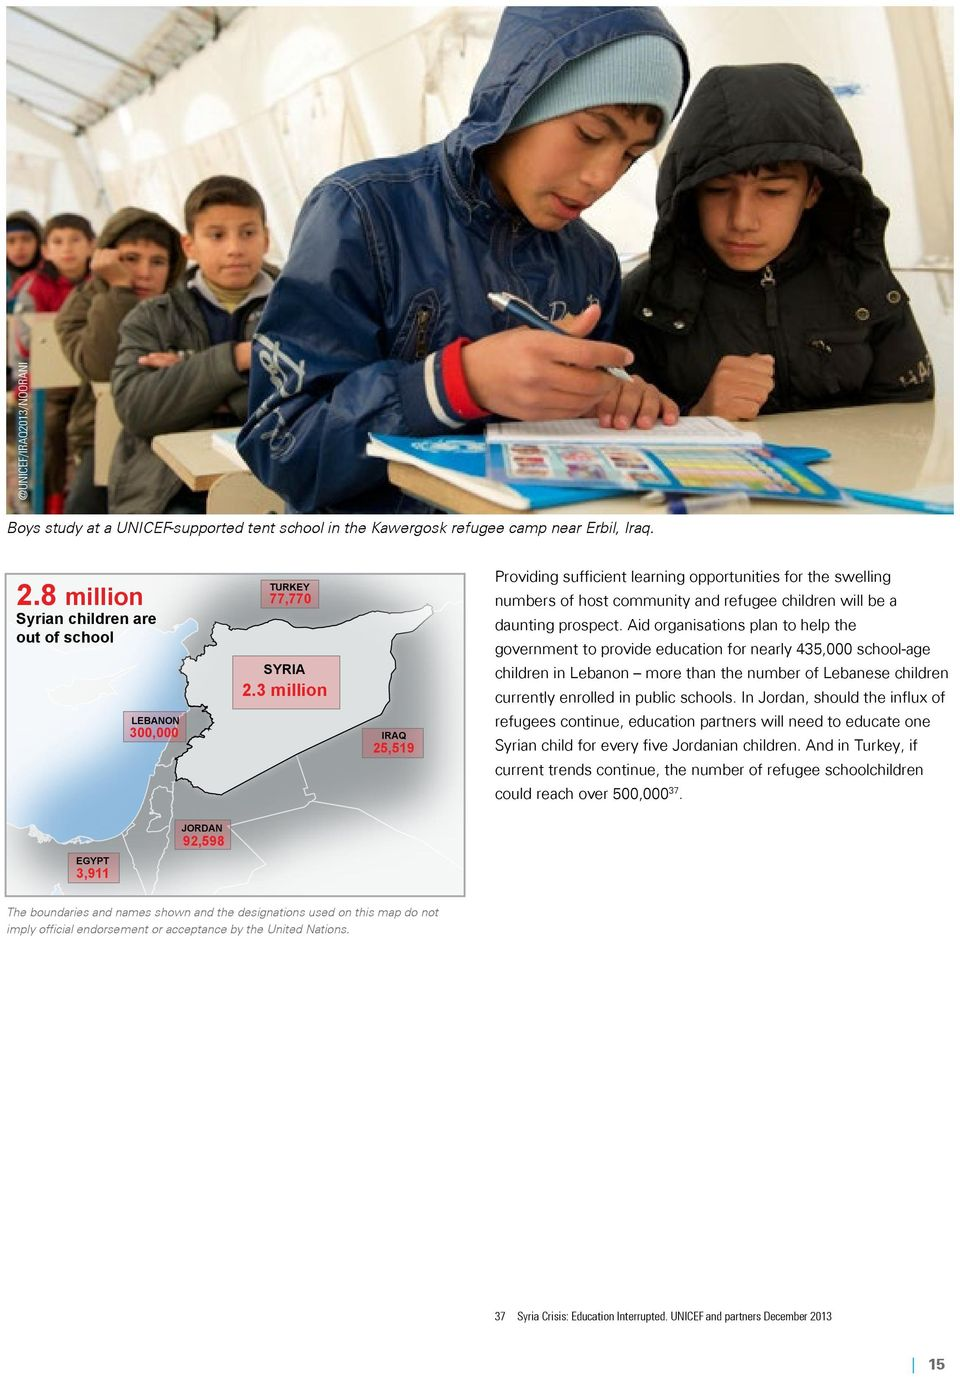 3 million IRAQ 25,519 Providing sufficient learning opportunities for the swelling numbers of host community and refugee children will be a daunting prospect.